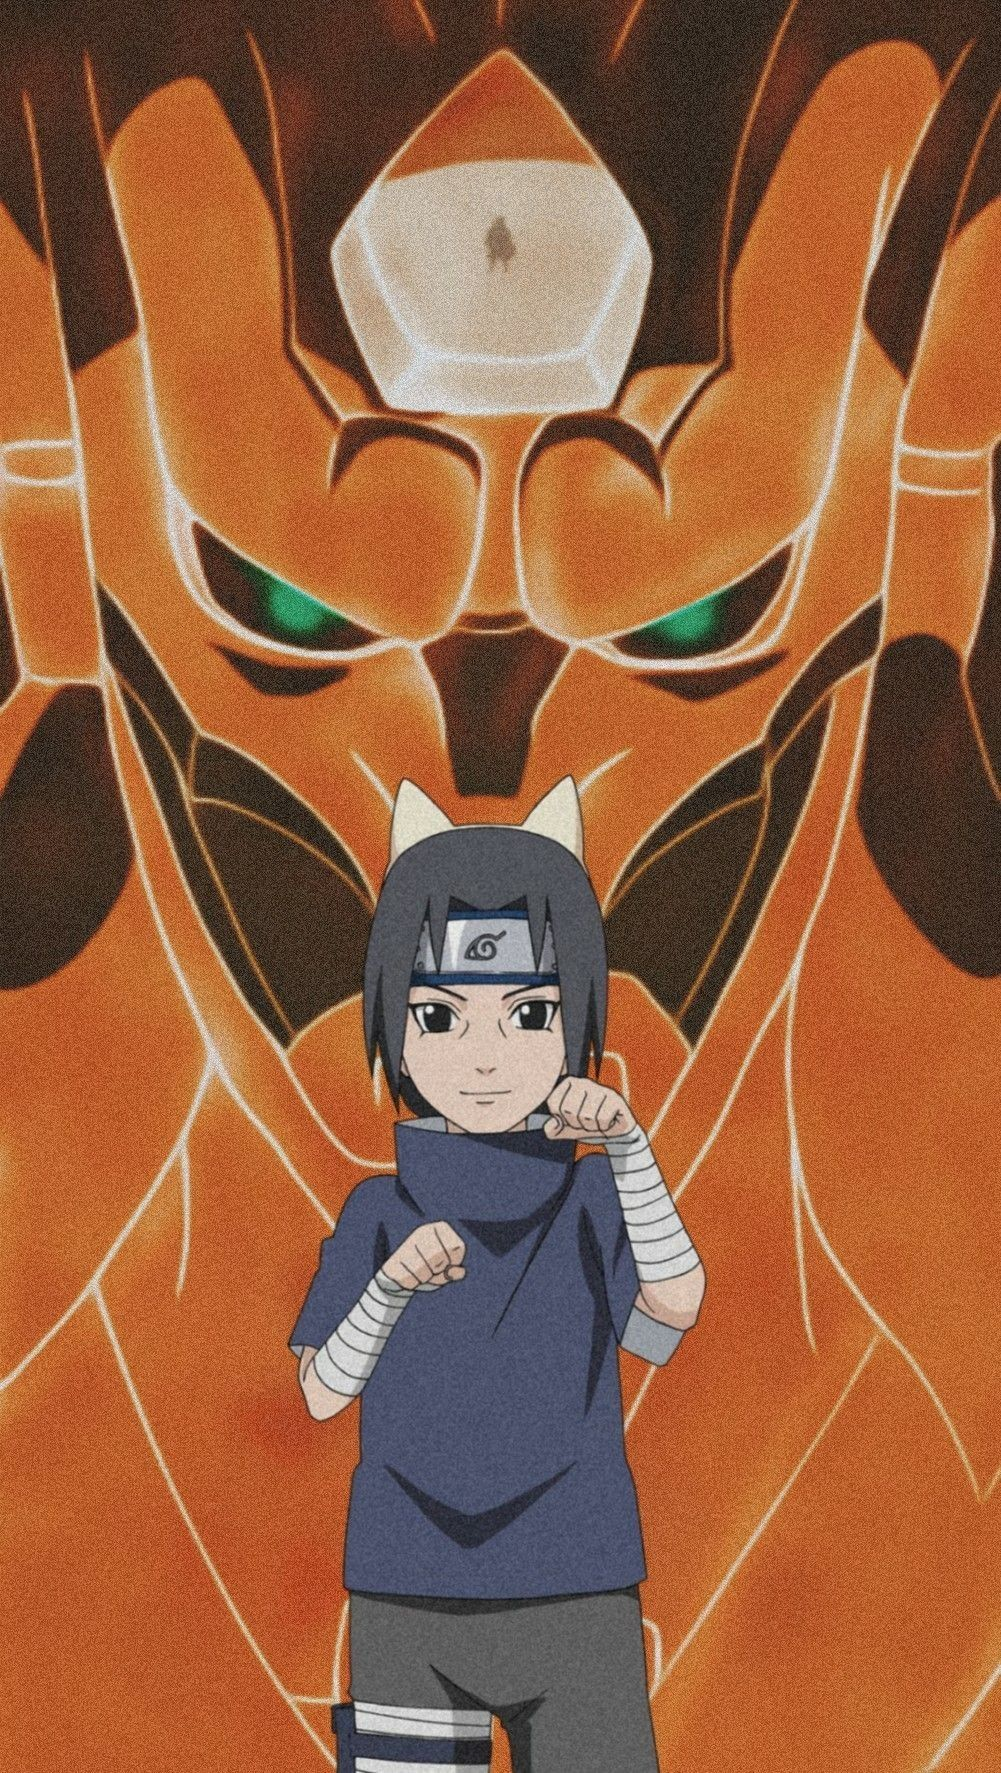 Itachi Kid Wallpaper : itachi, wallpaper, Itachi, Wallpapers, Backgrounds, WallpaperAccess